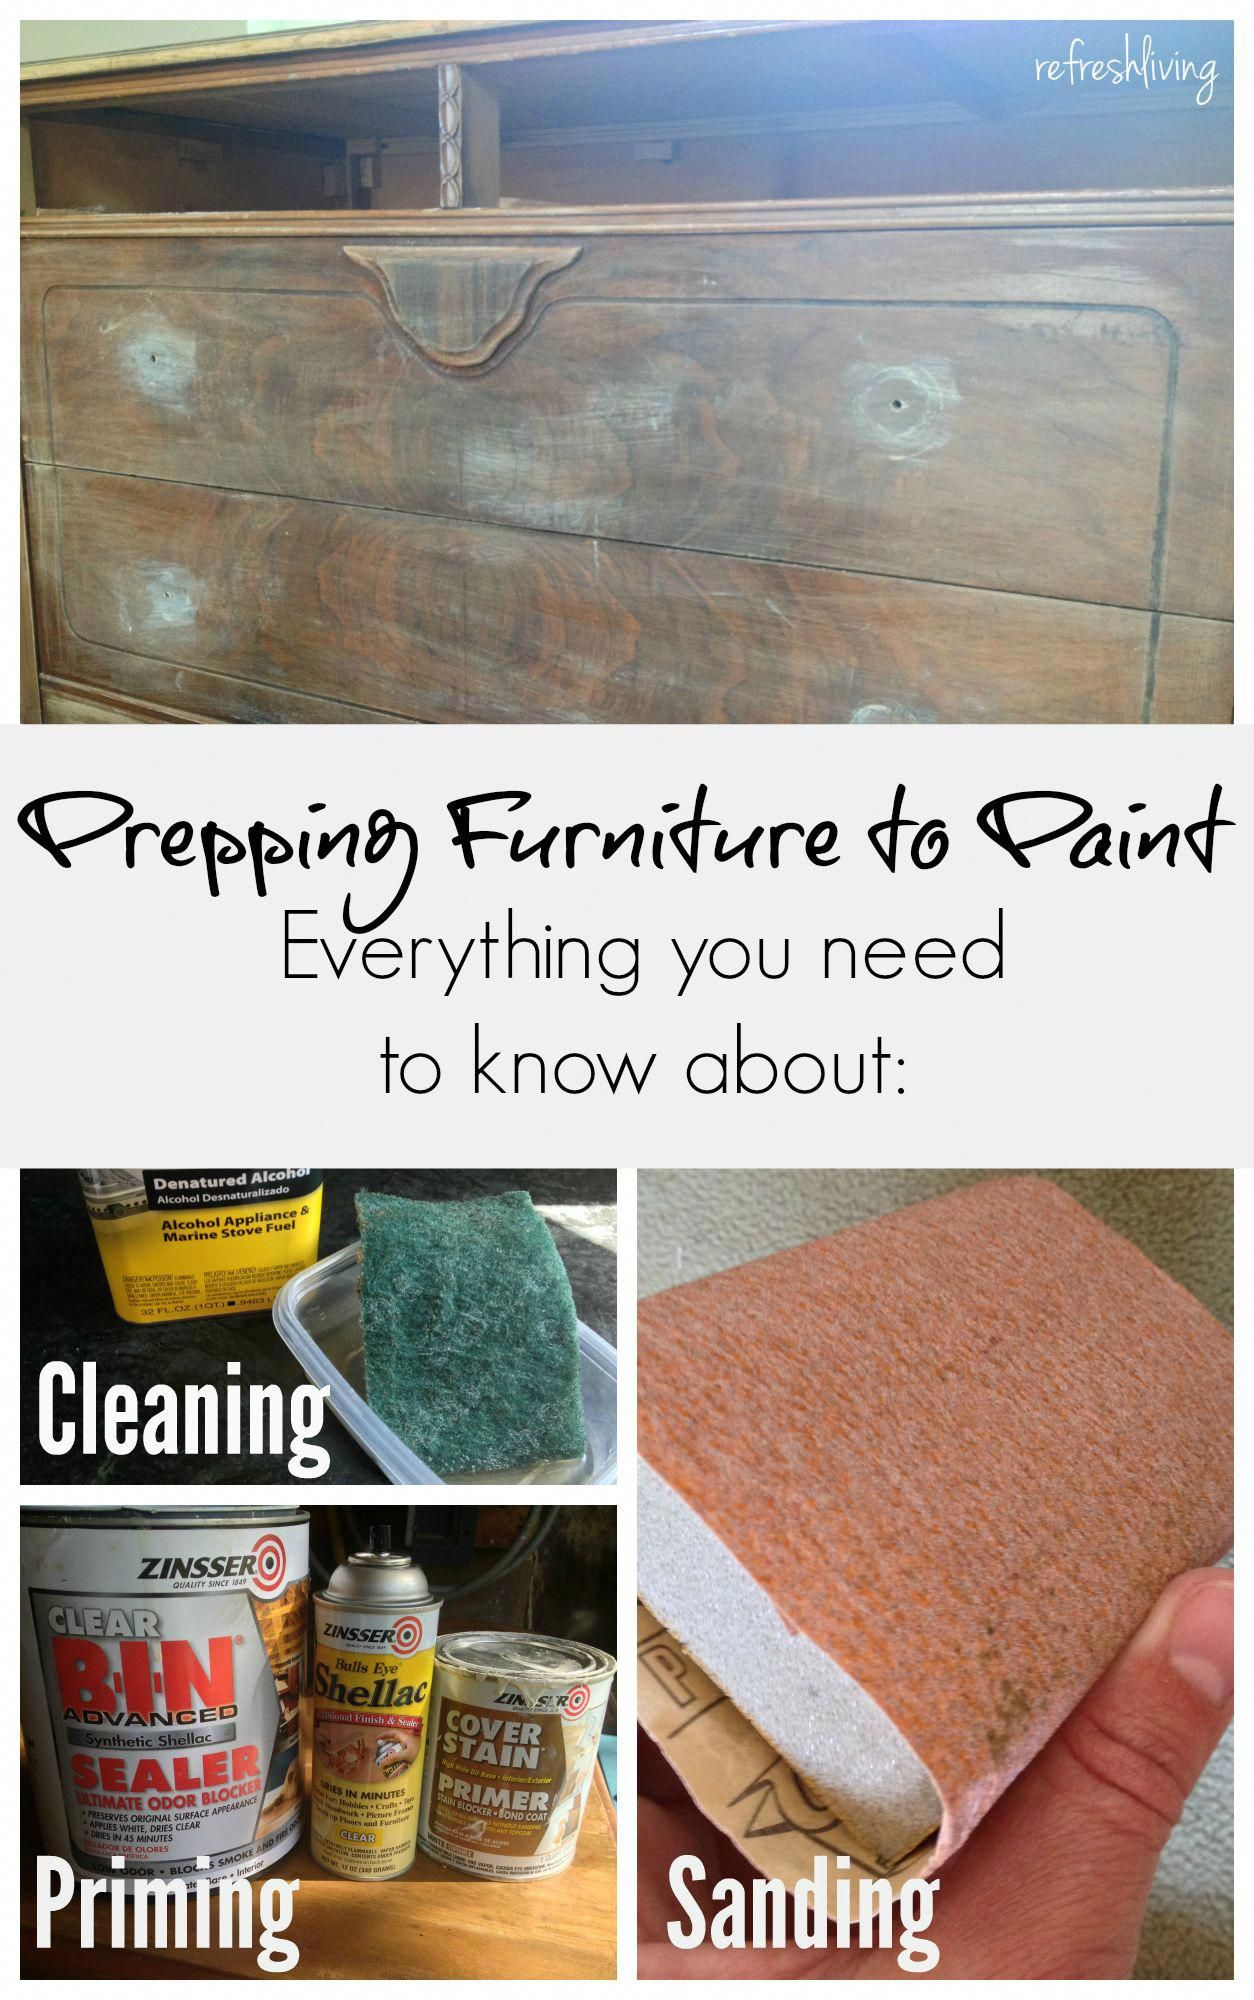 The Most Important Tips For Preparing Furniture To Paint With Milk Chalk Acrylic Or Spray Preparingtopaintaroom